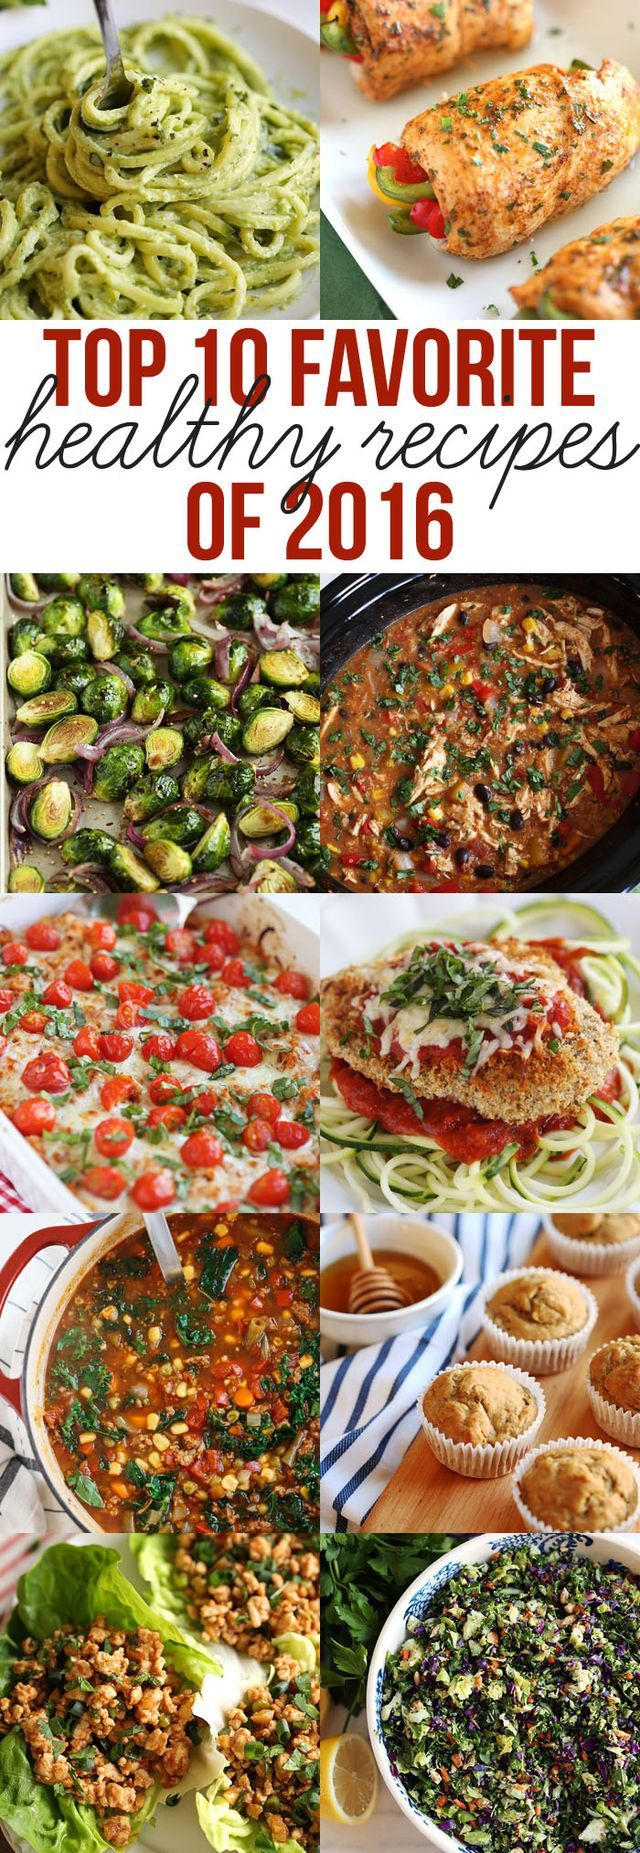 Check out the top 10 most popular healthy recipes featured on Eat Yourself Skinny in 2016 that are a MUST to try in the New Year! Can you believe 2016 is just about over?! Wow what an amazing year thi